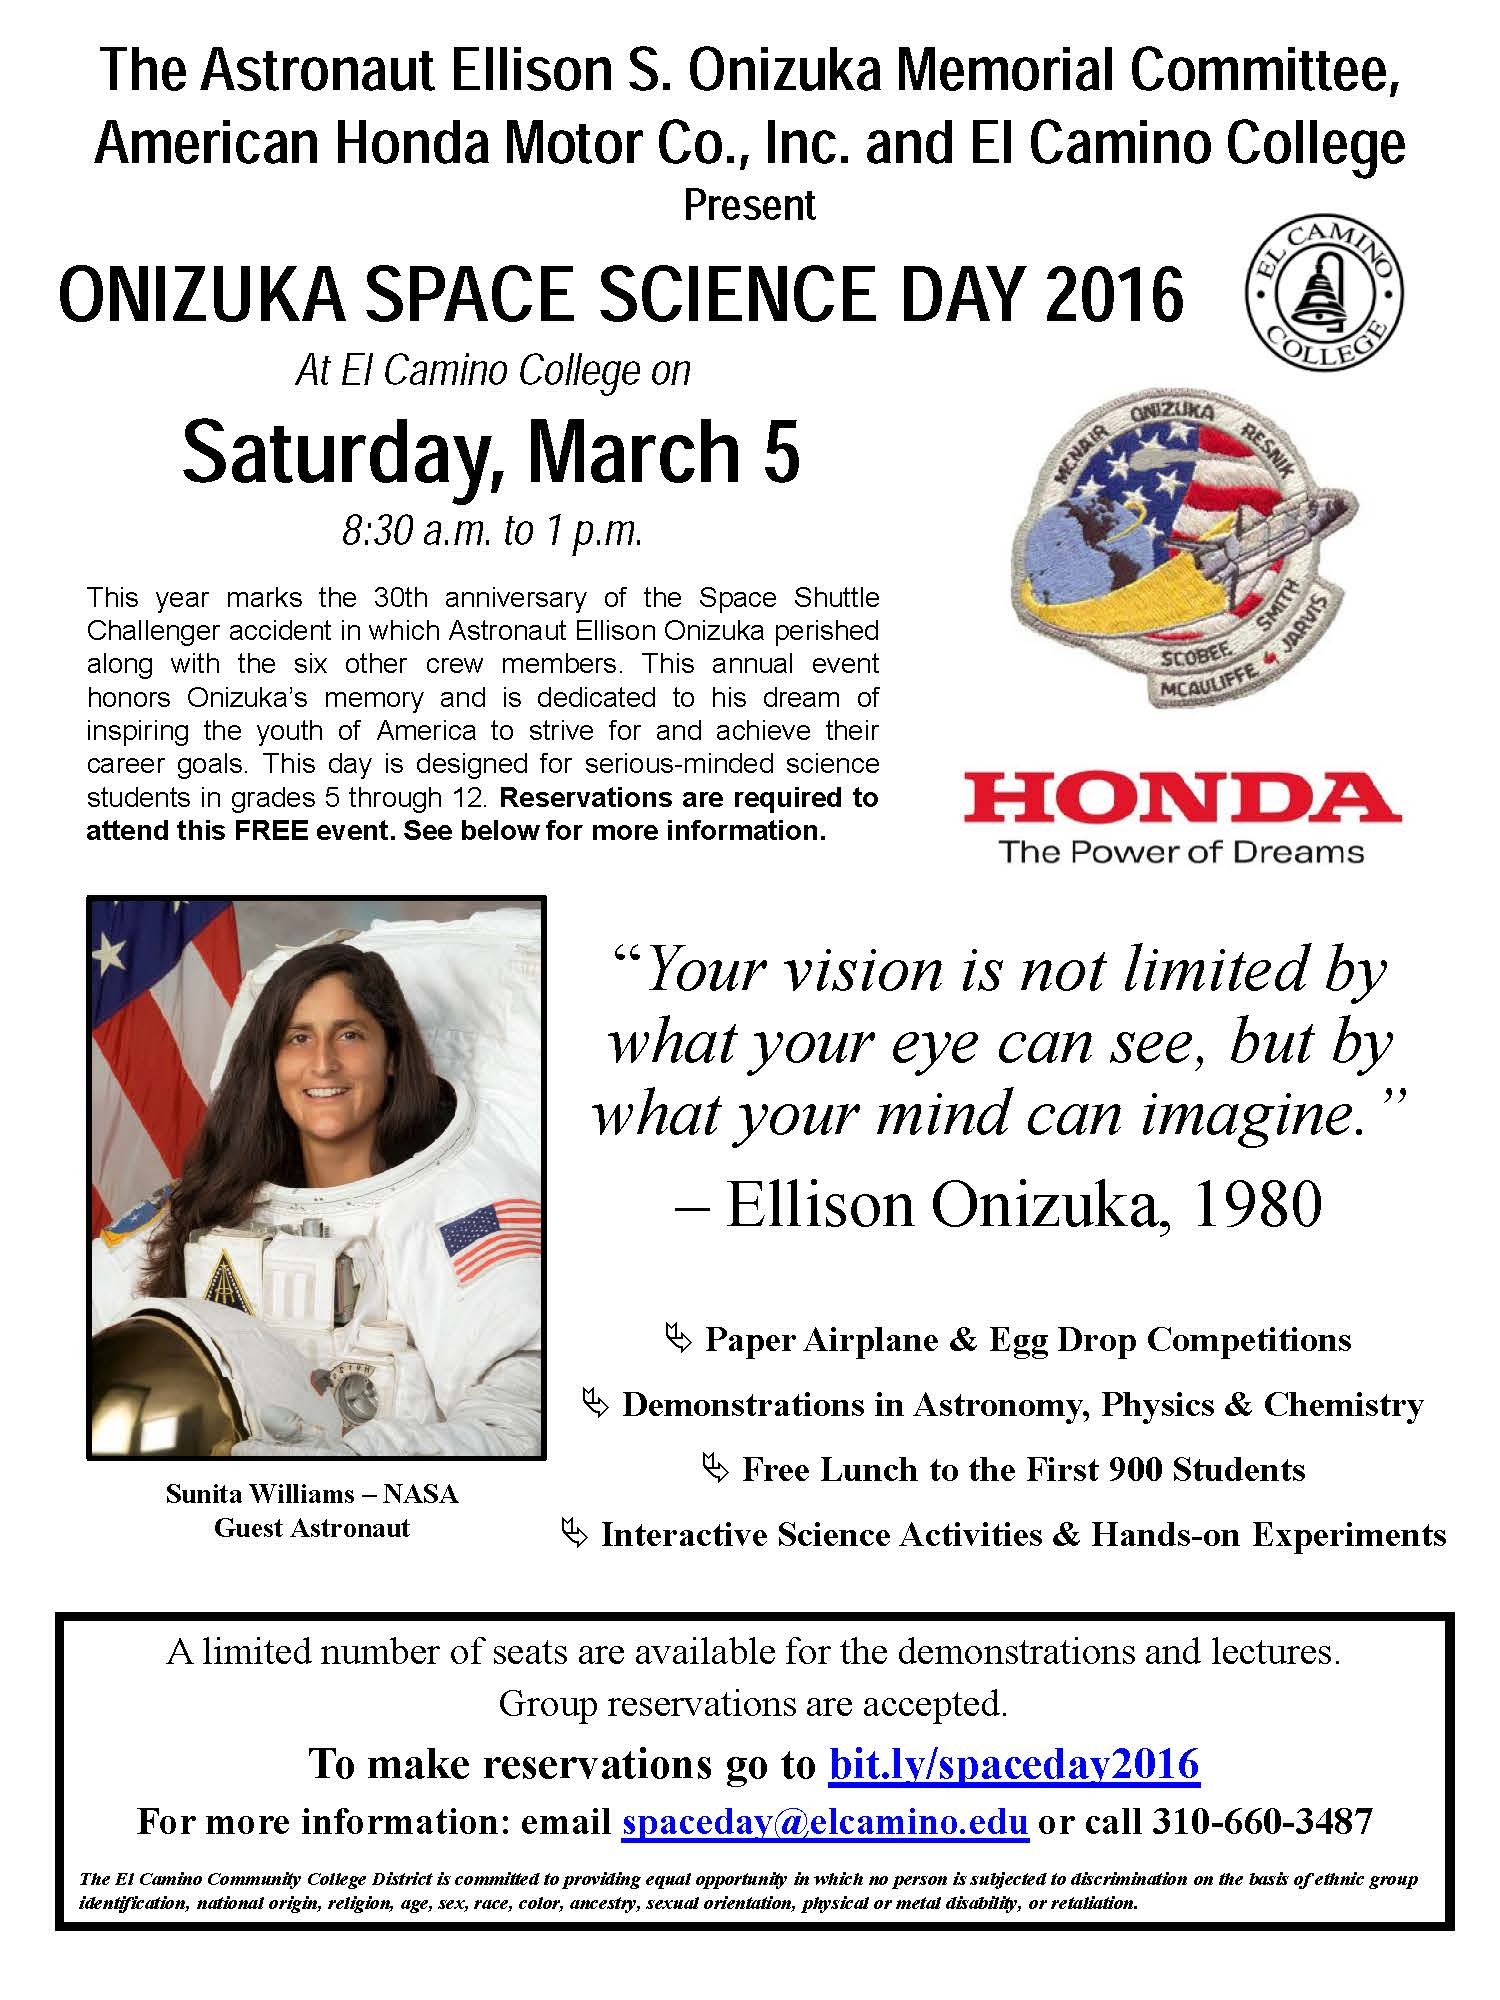 SpaceScienceDay2016